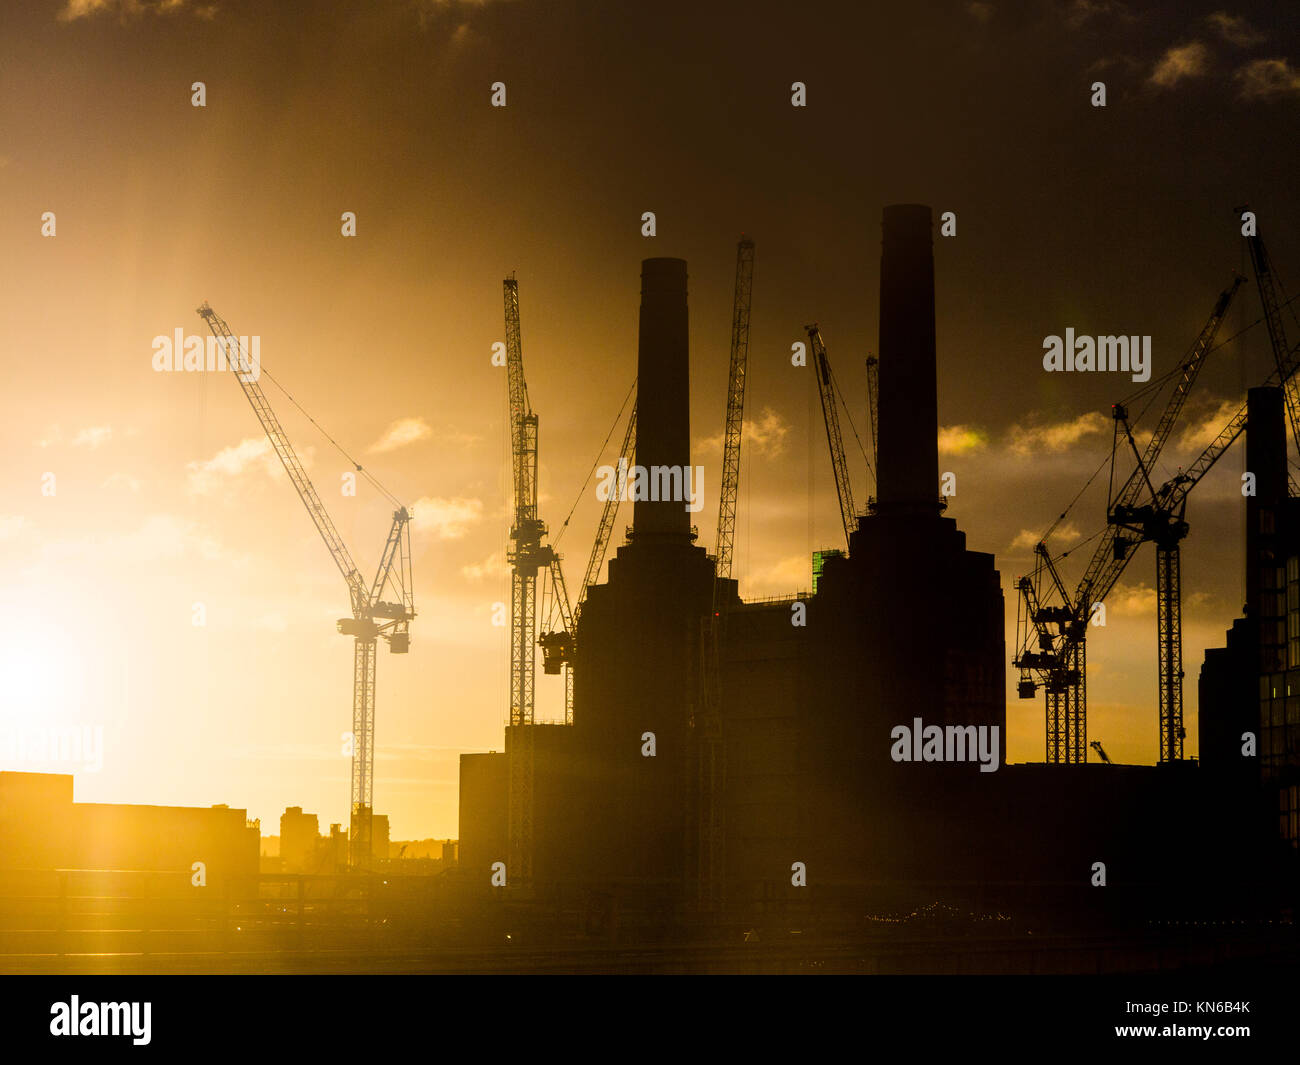 Battersea Power Station at dawn - Stock Image